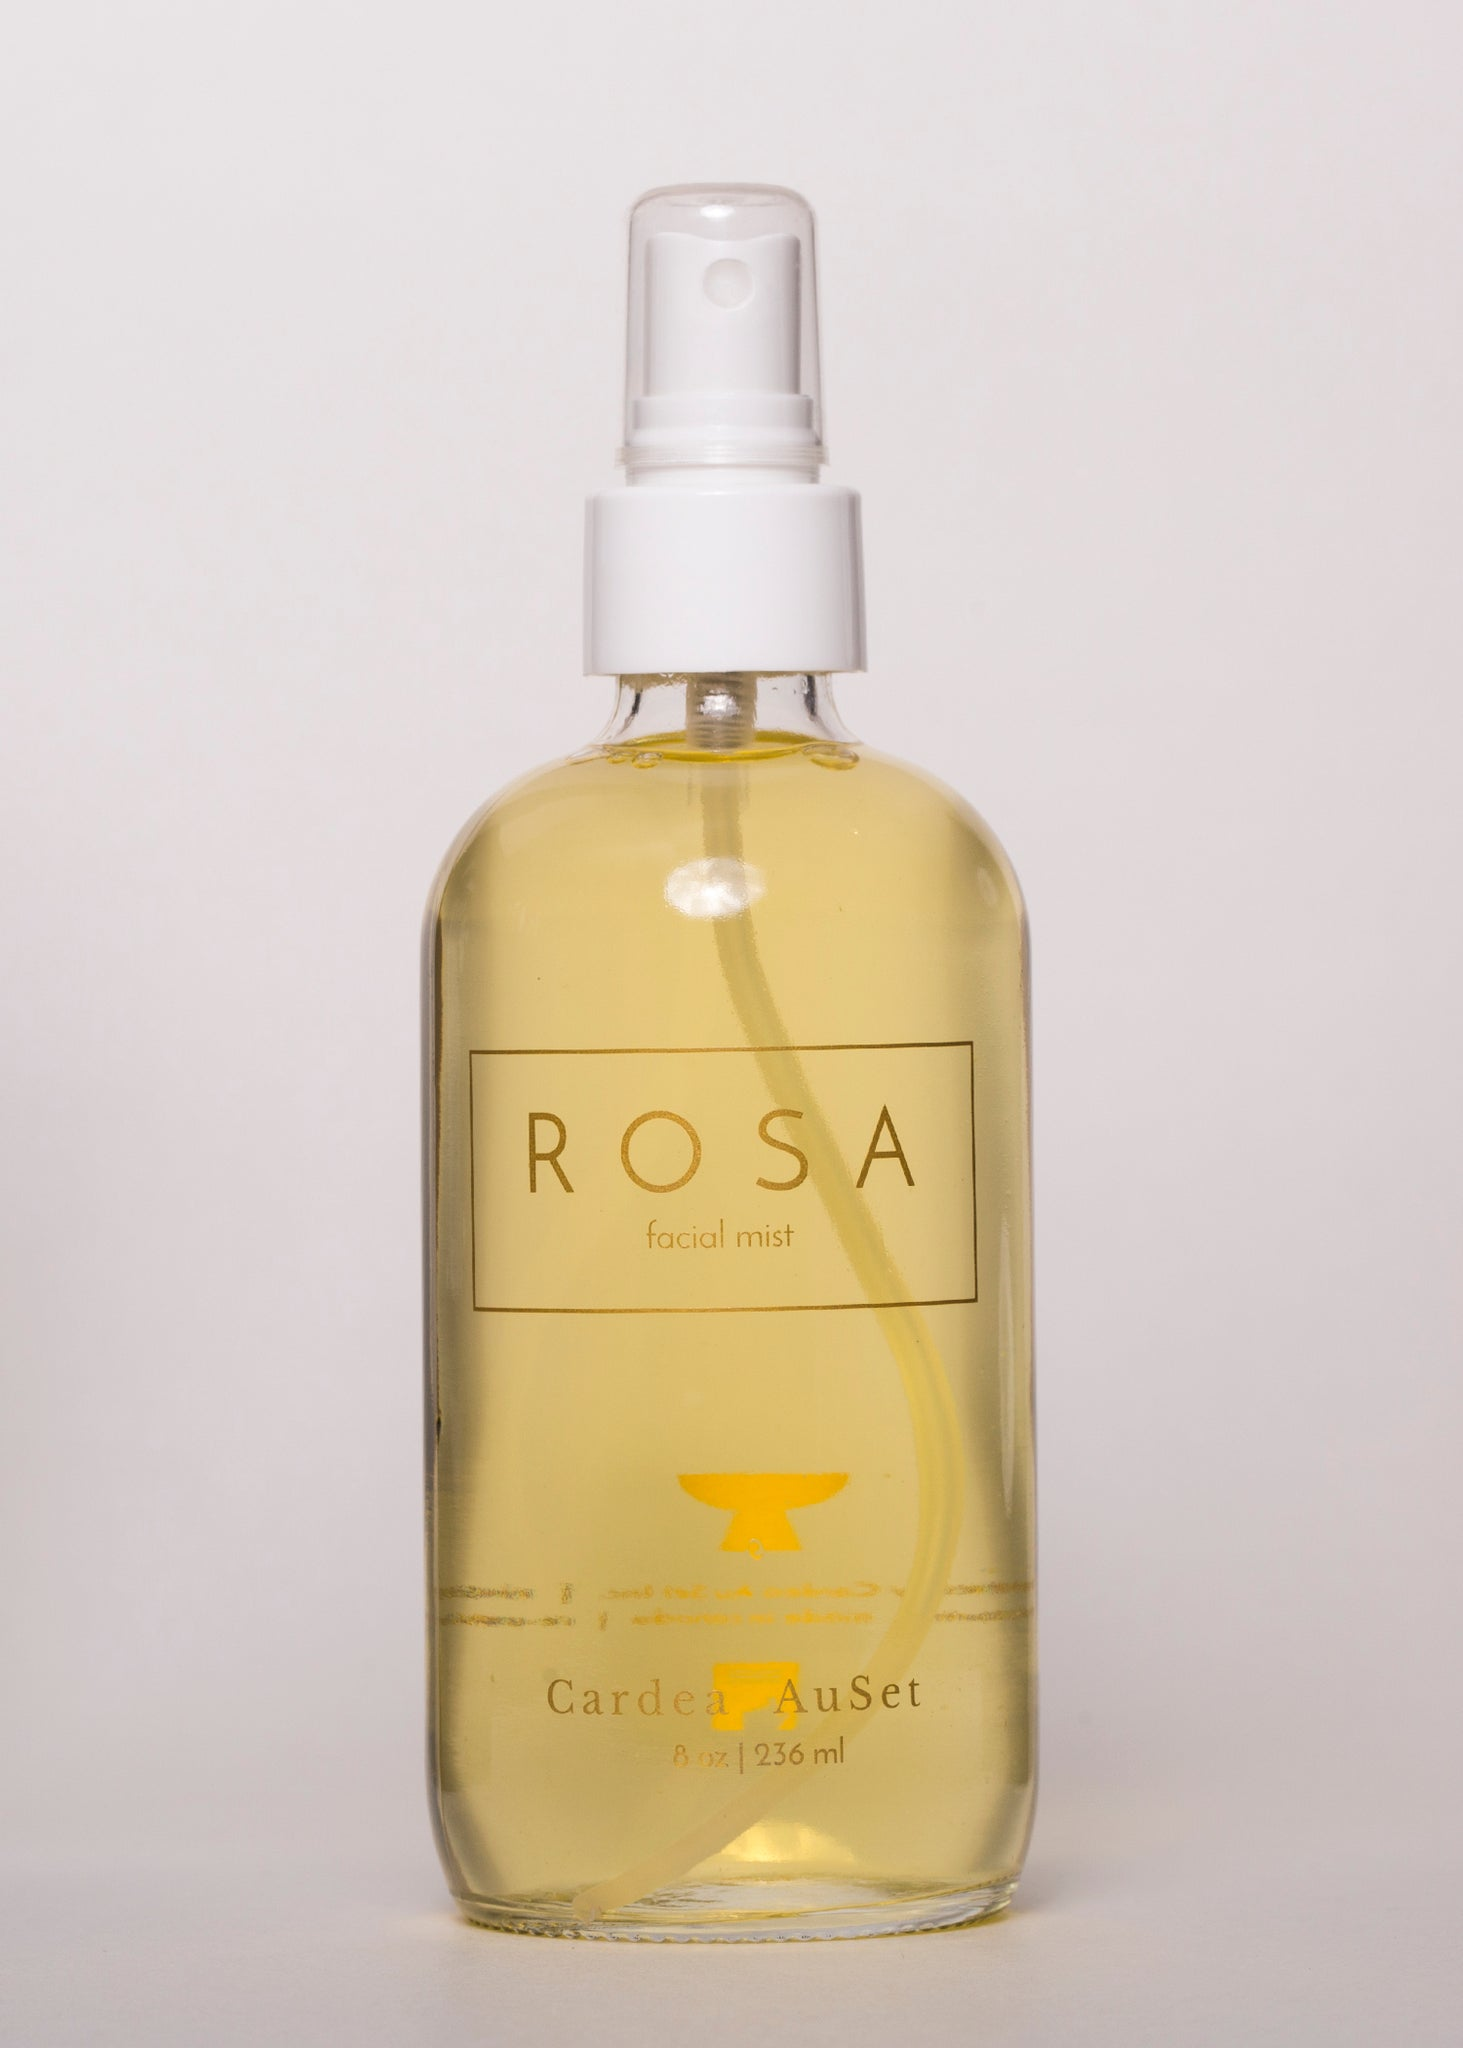 ROSA Facial Mist - Cardea AuSet | Goodnight Beauty | Rose water, aloe vera, toner, face mist, canada brand, canada beauty, made in canada, natural skin care, natural beauty